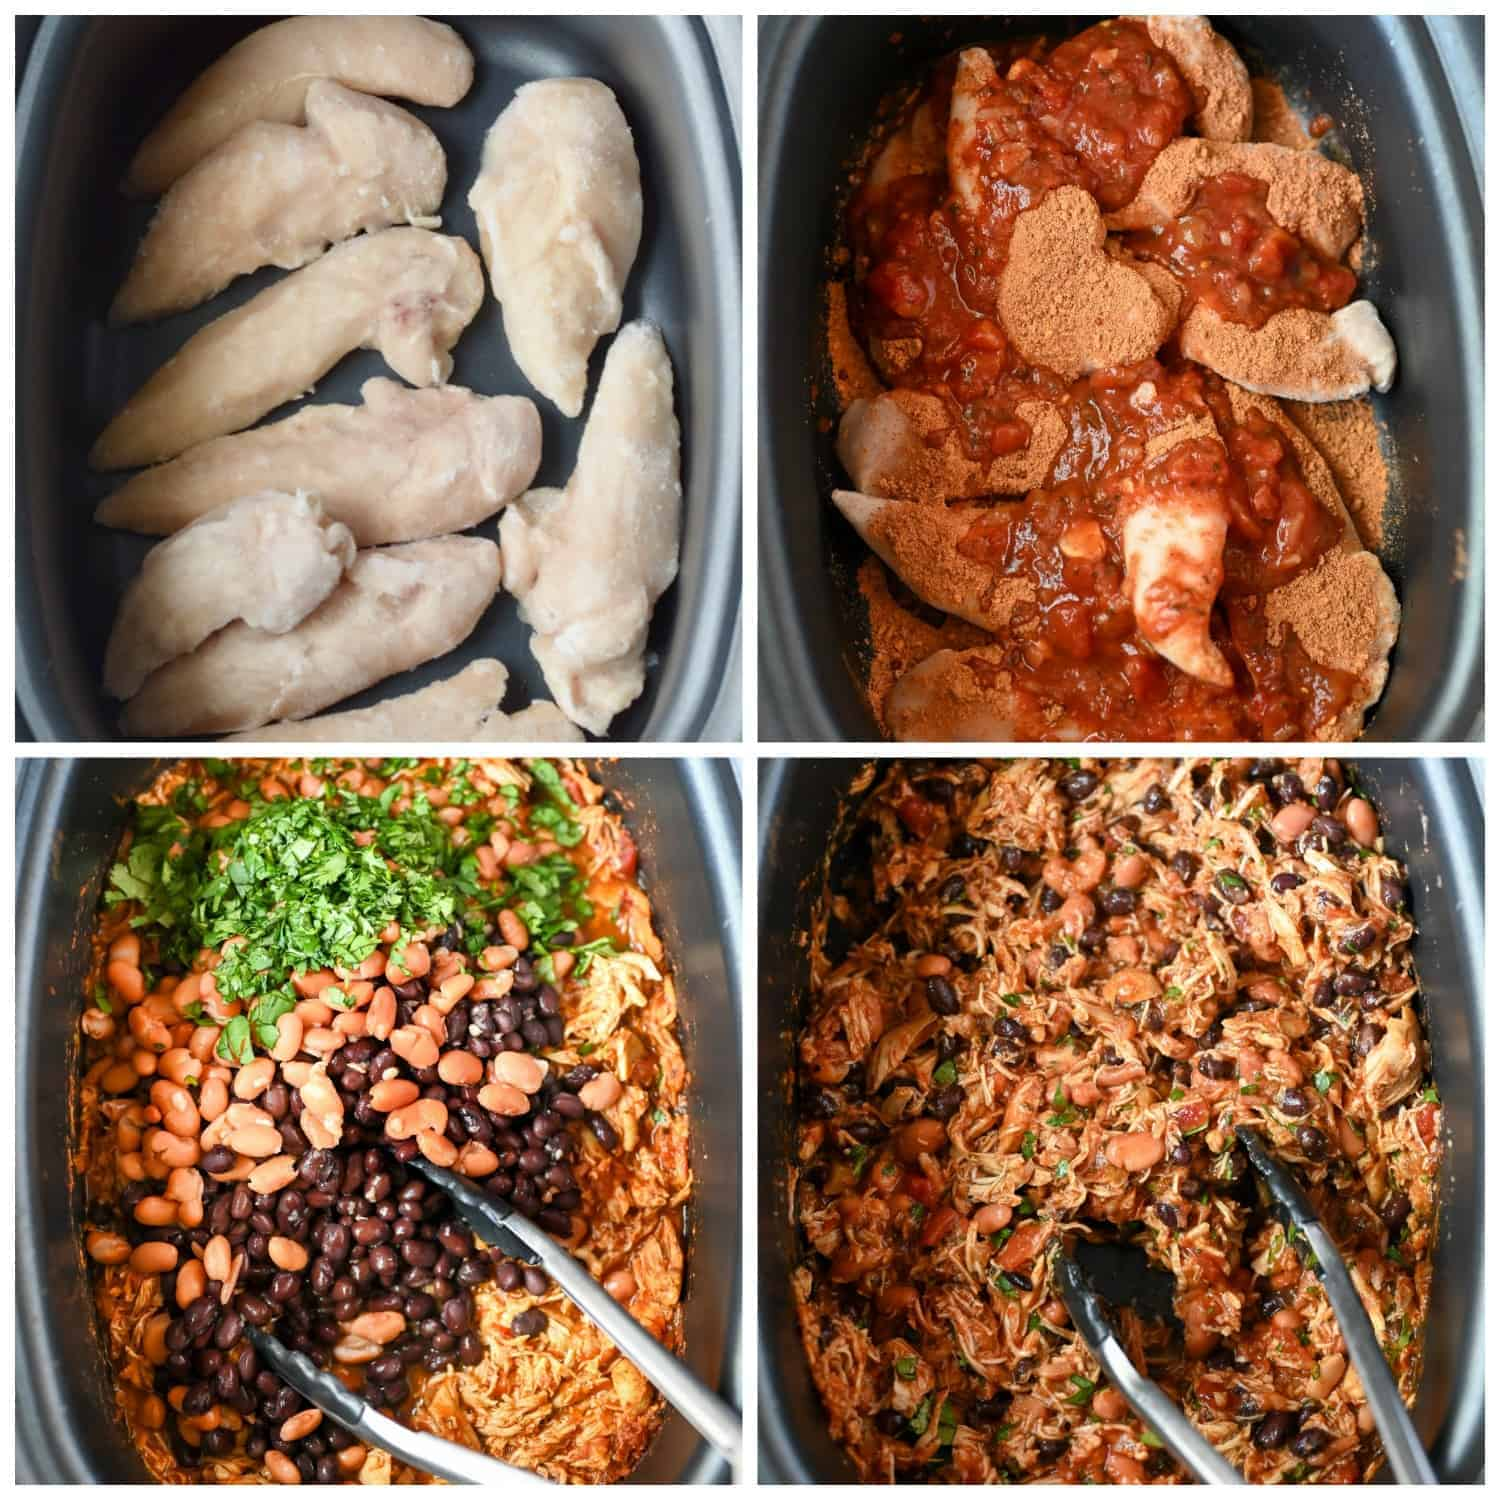 Four process photos. First one raw chicken placed in a slow cooker. Second one, raw chicken with taco seasoning and salsa poured on top in the slow cooker. Third one black beans, pinto beans and fresh cilantro on top. Fourth one, everything cooked and tossed together.